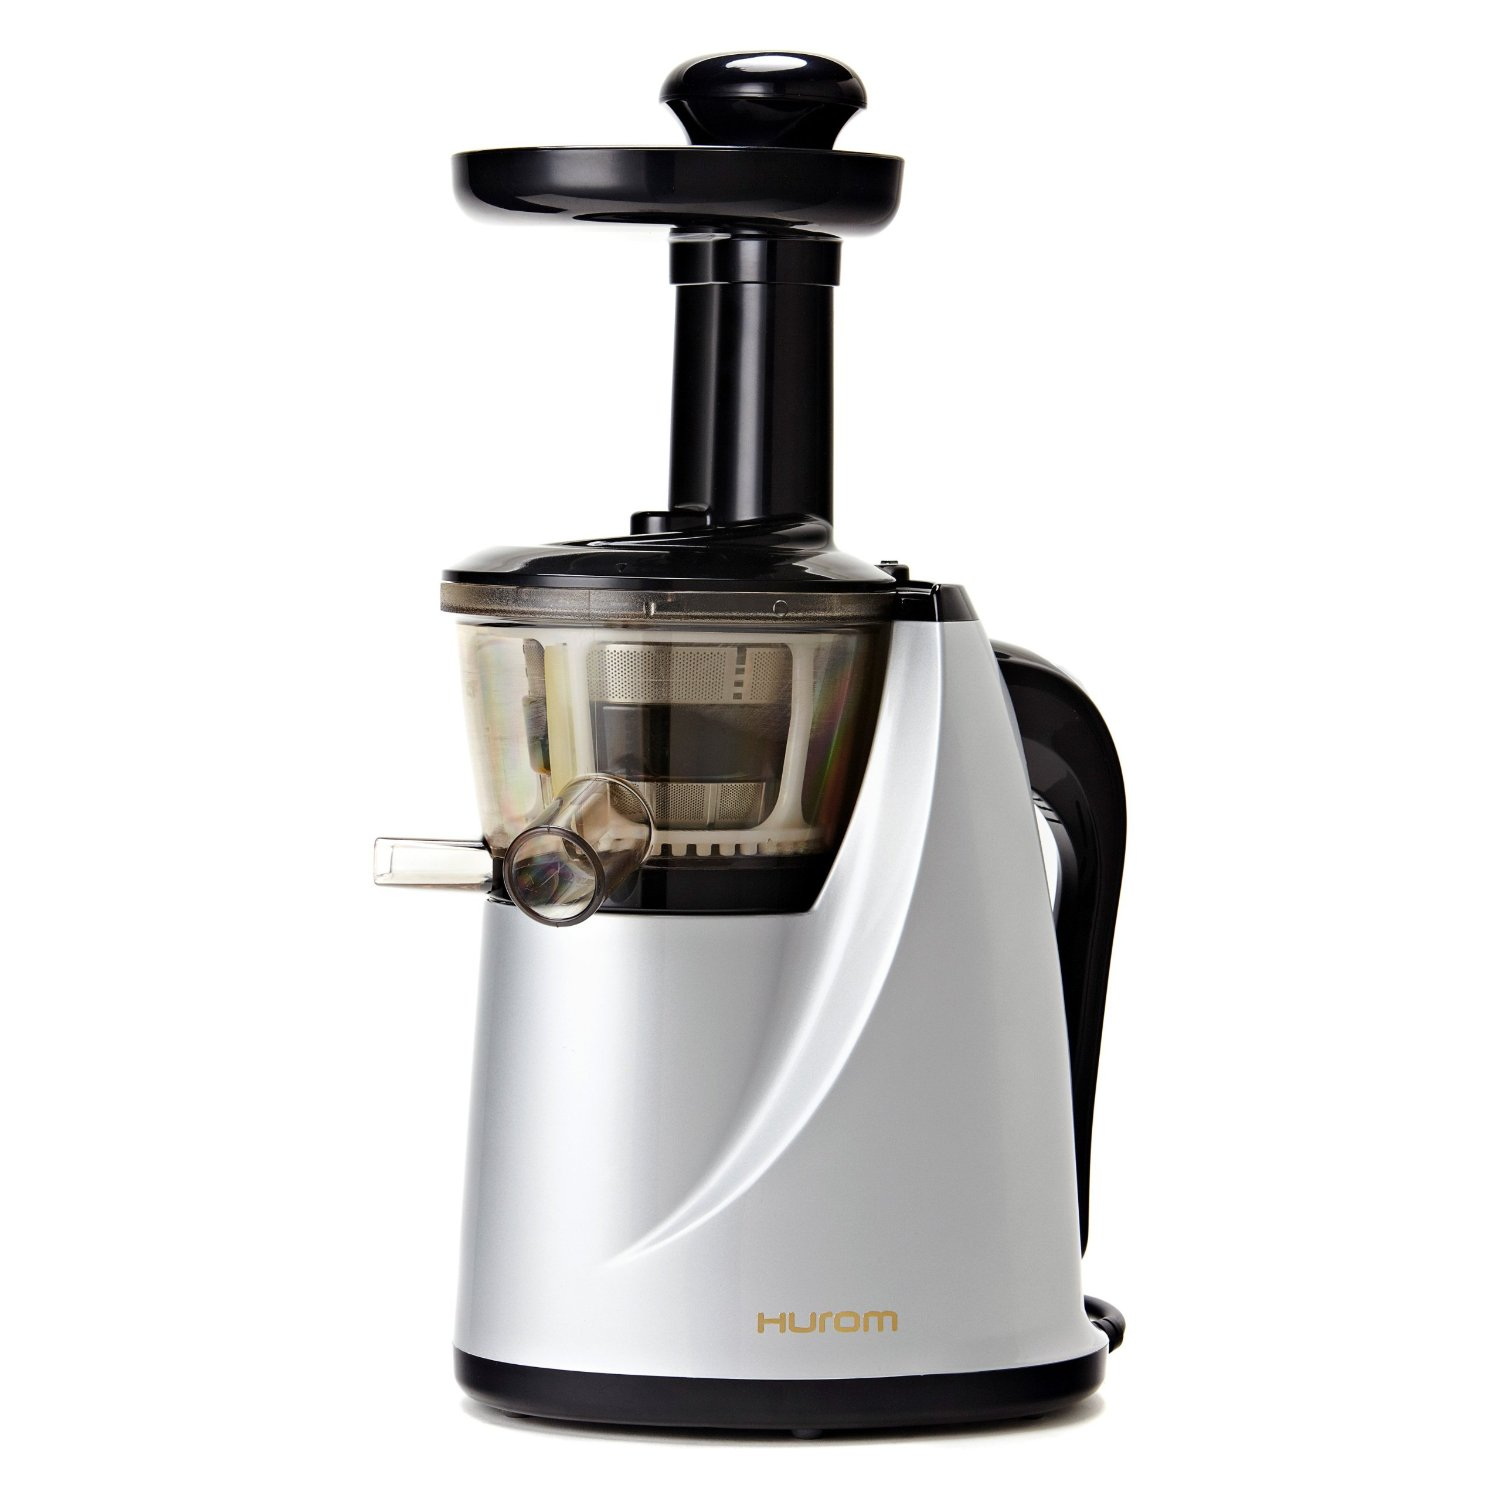 Slow Juicer Silvercrest Review : Hurom HU-100 Masticating Slow Juicer Review - Best Cold Press Juicers